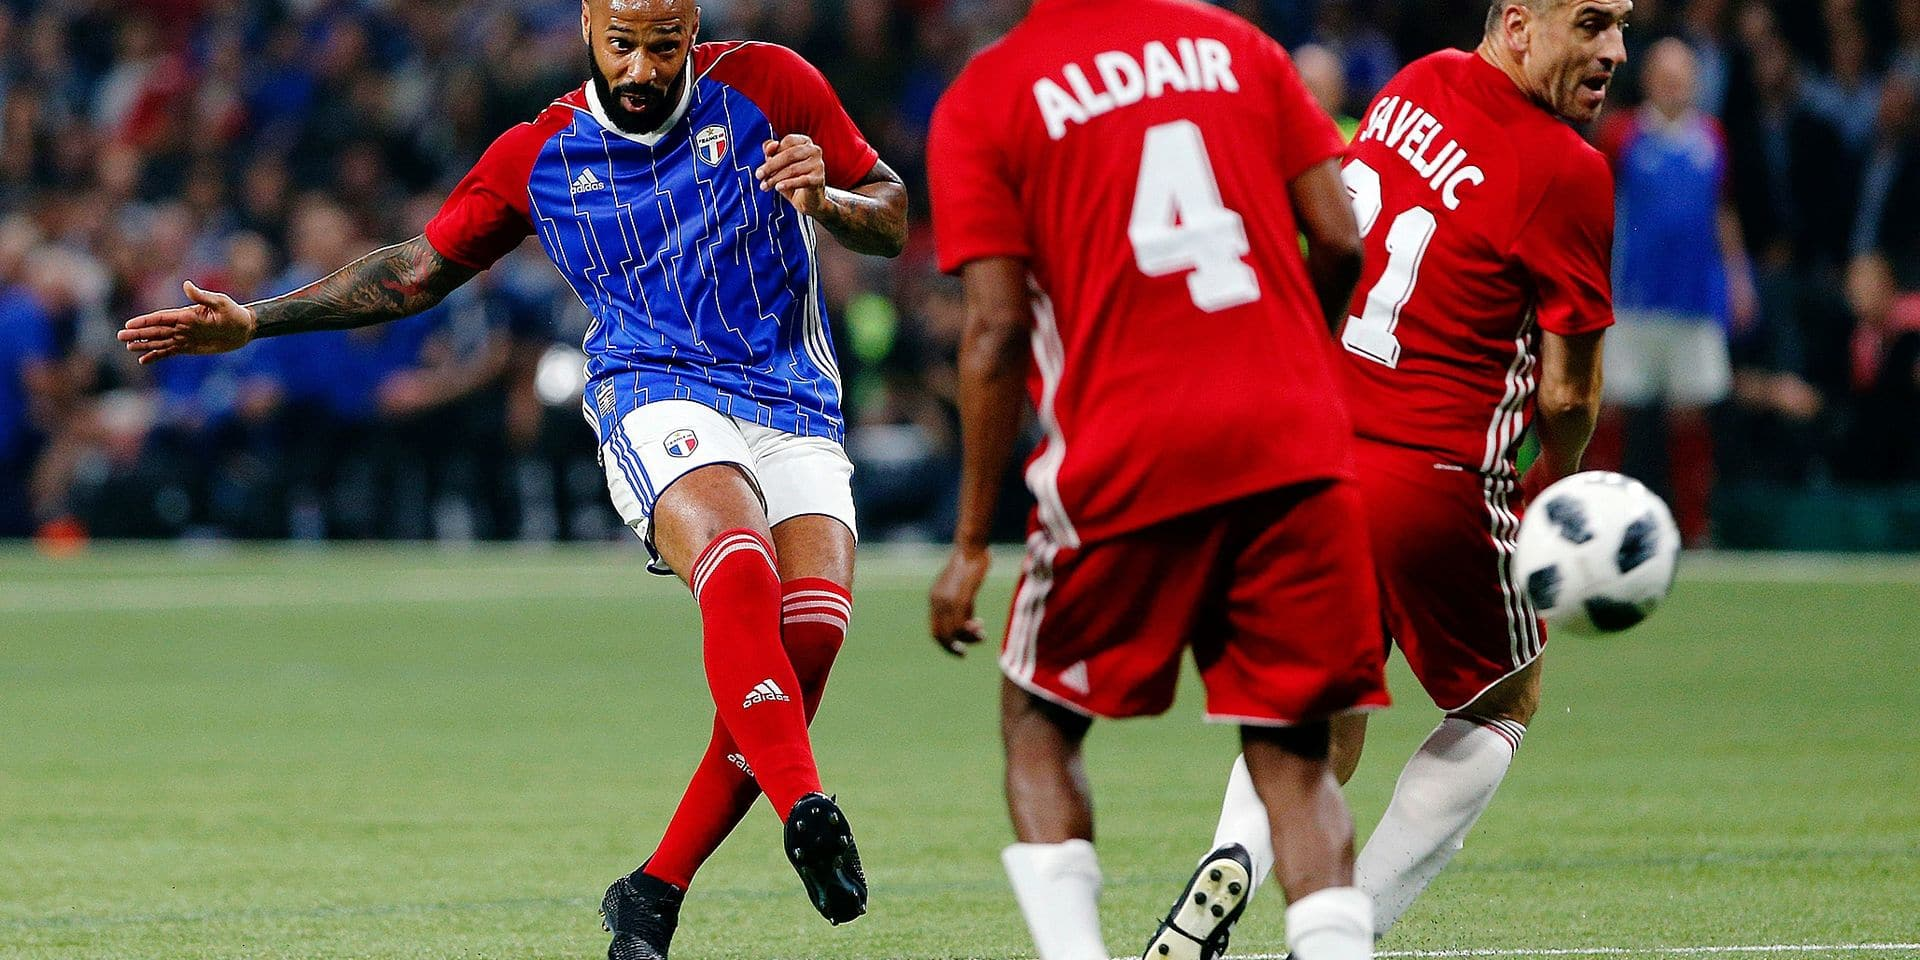 France's Thierry Henry, left, shots the ball past Aldair of Brazil, center, and Nisa Saveljic of Serbia, right, during a charity soccer match between members of the 1998 World Cup winning French team and a team of international veteran players who were also involved in the same tournament, at the U Arena in Nanterre, north of Paris, France, Tuesday, June 12, 2018. (AP Photo/Thibault Camus)